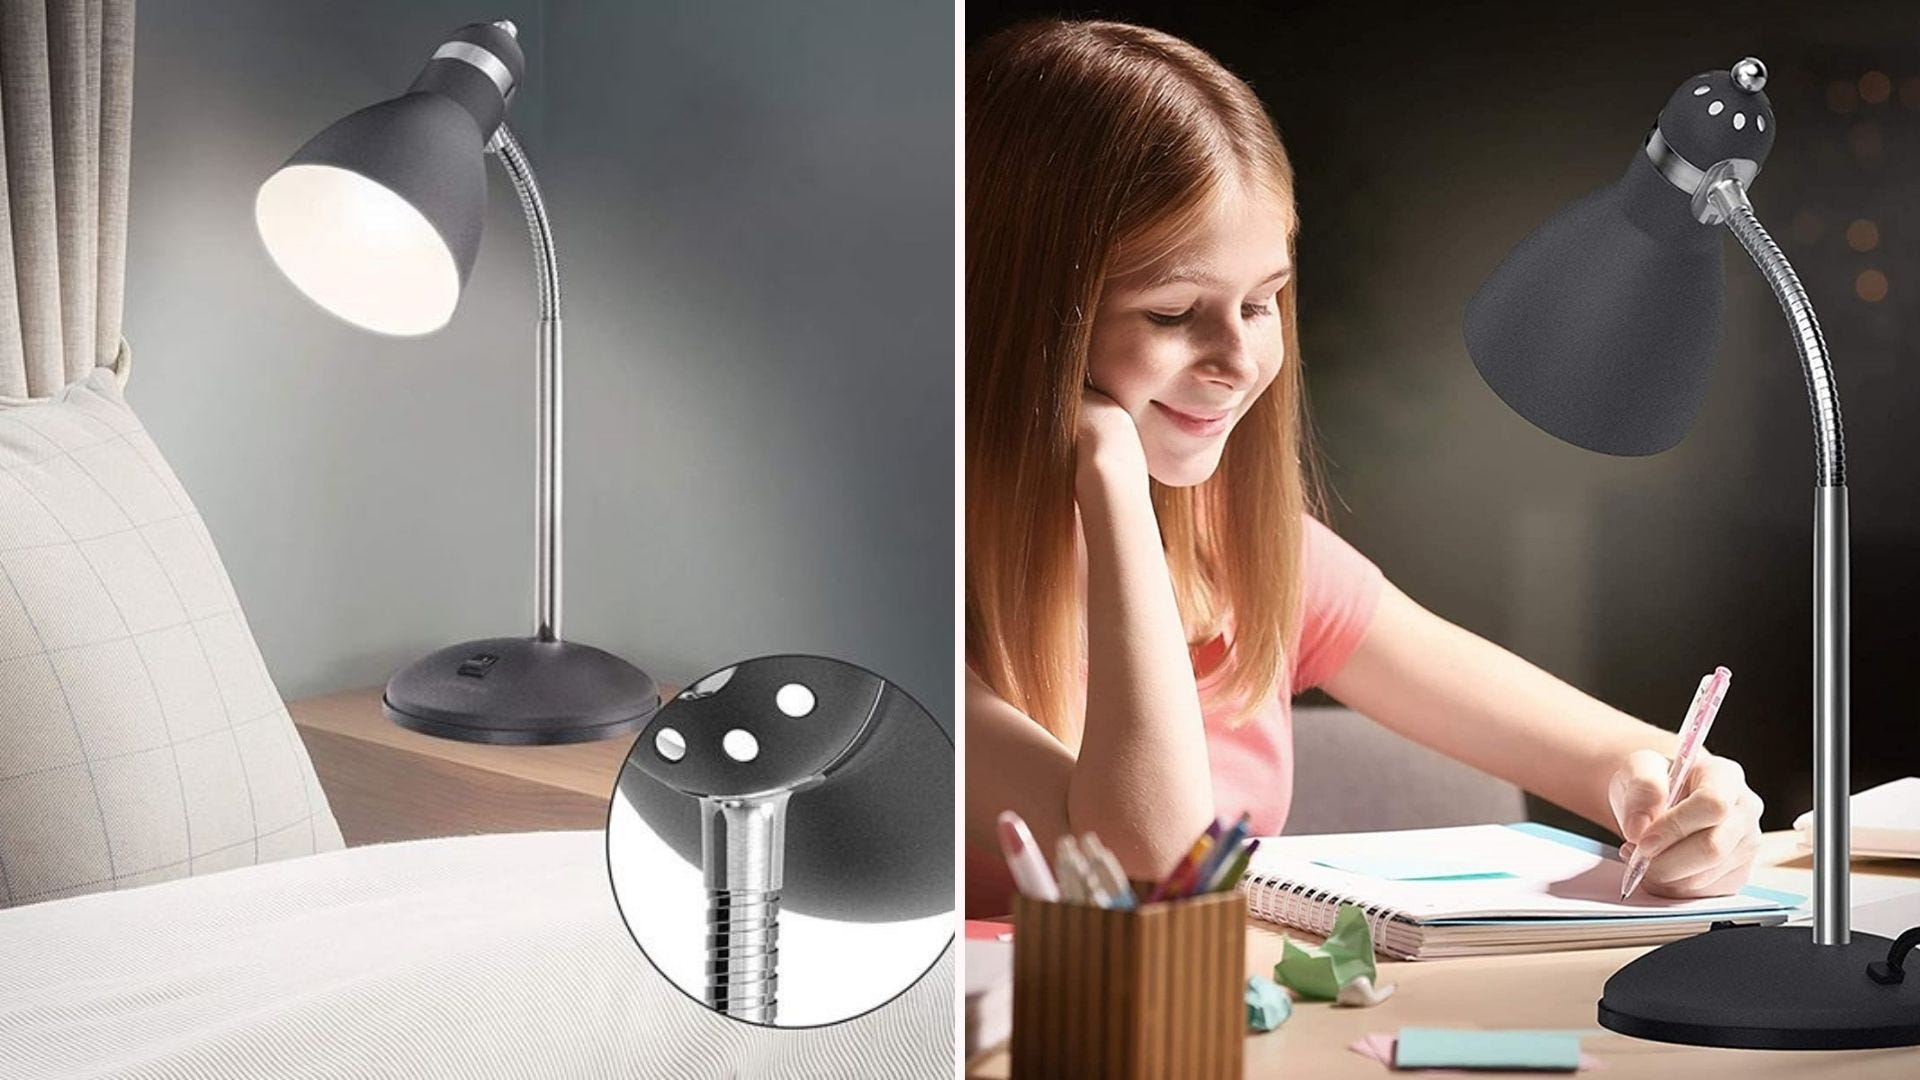 The LEPOWER desk lamp in Sand Black on a bedside table and on a desk where a young girl is doing homework.